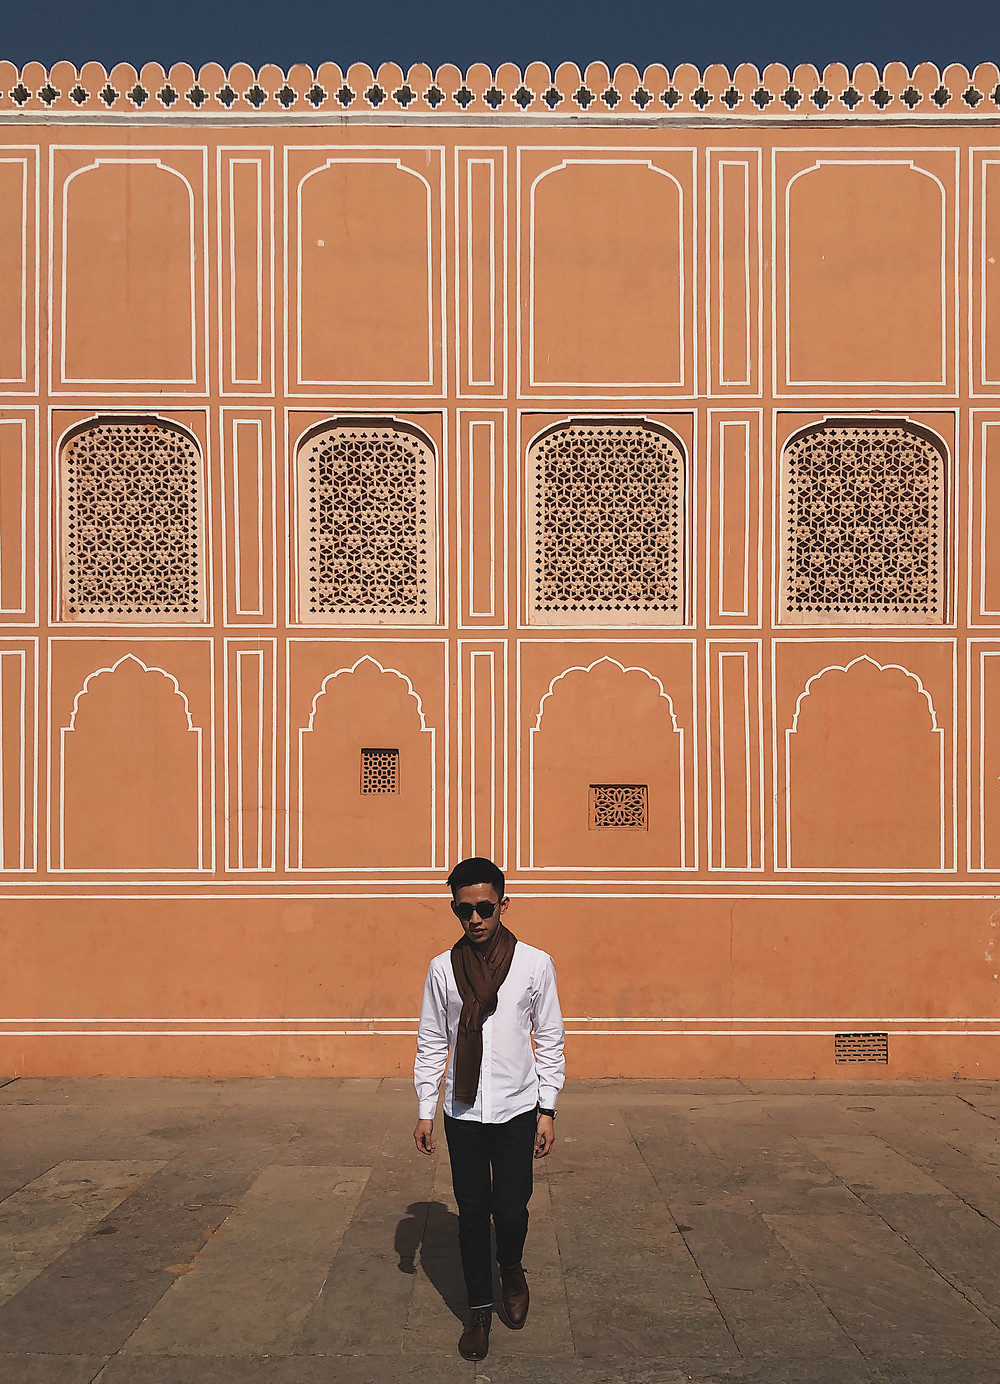 Jaipur, the Pink City of Rajasthan